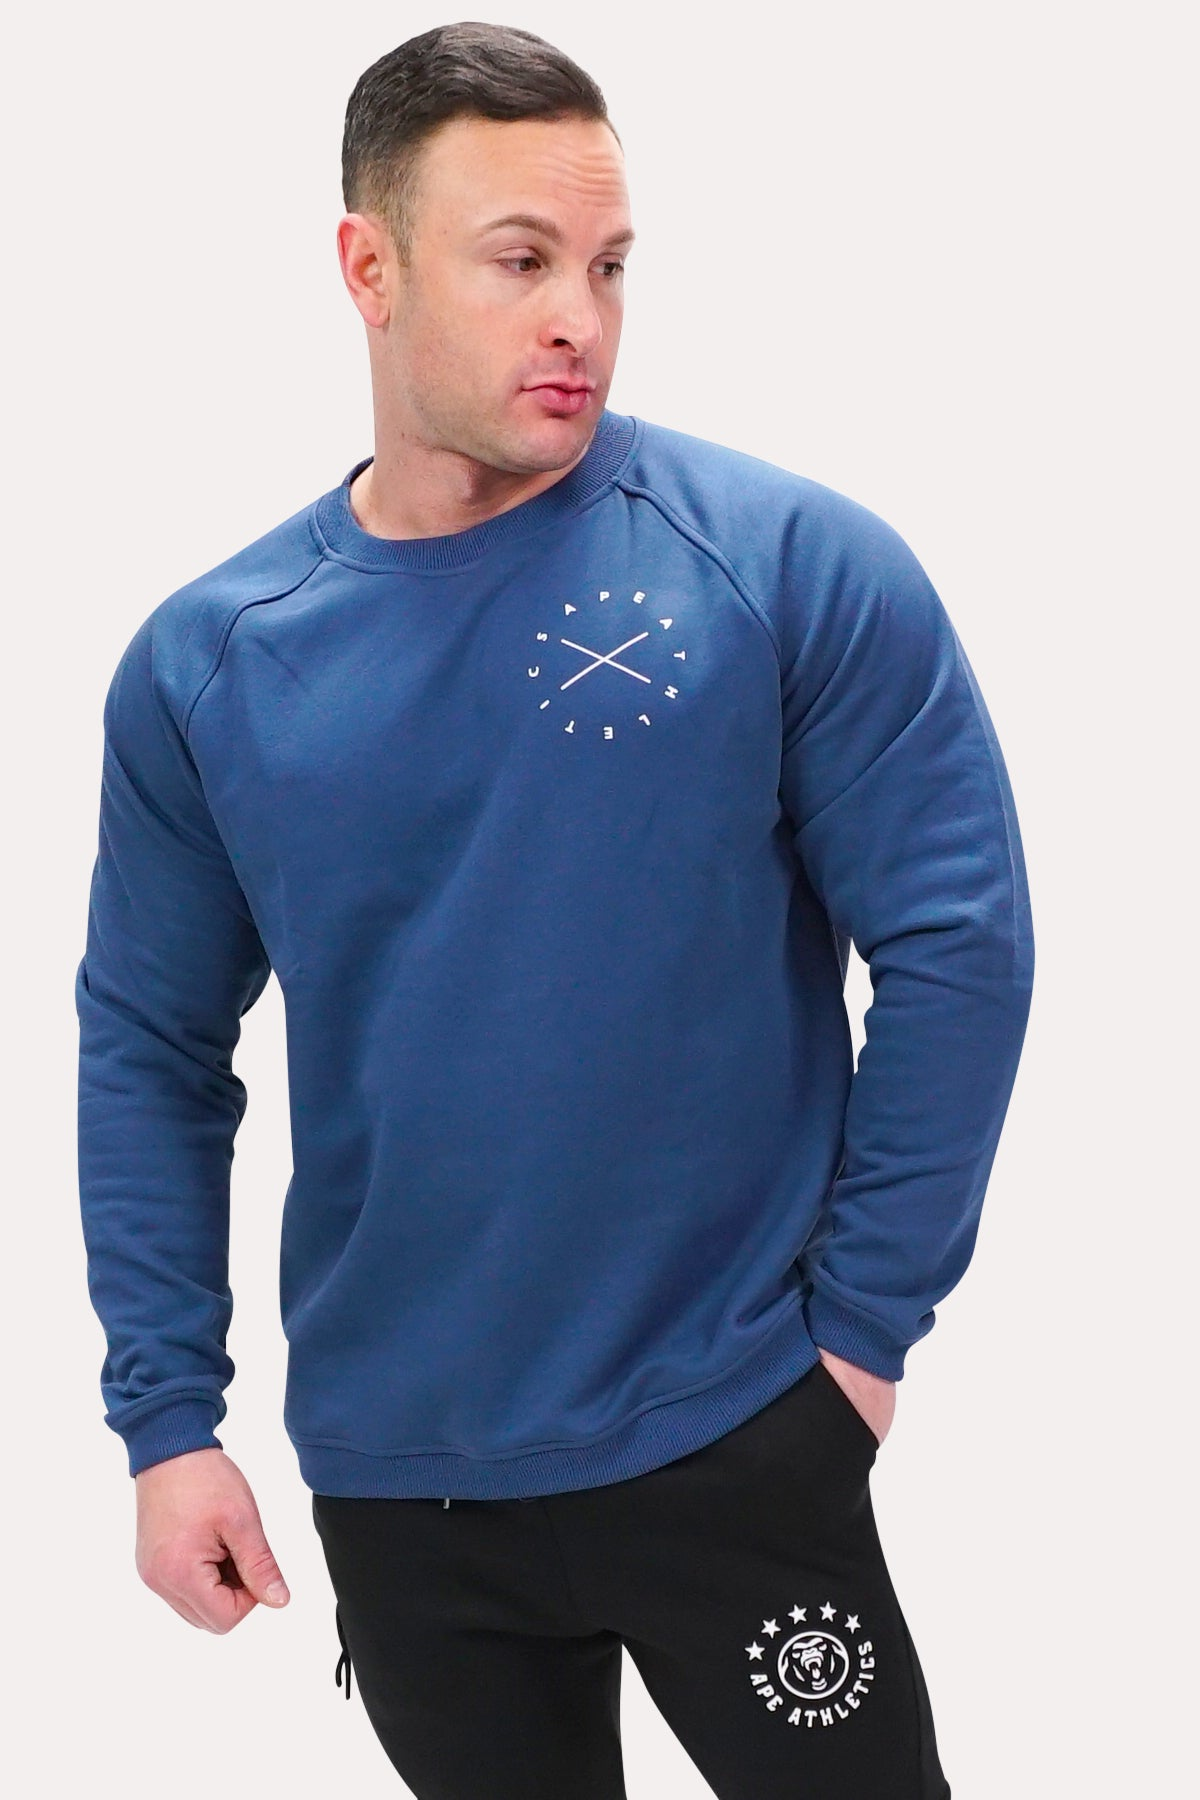 Crew Neck Sweatshirt - X Navy